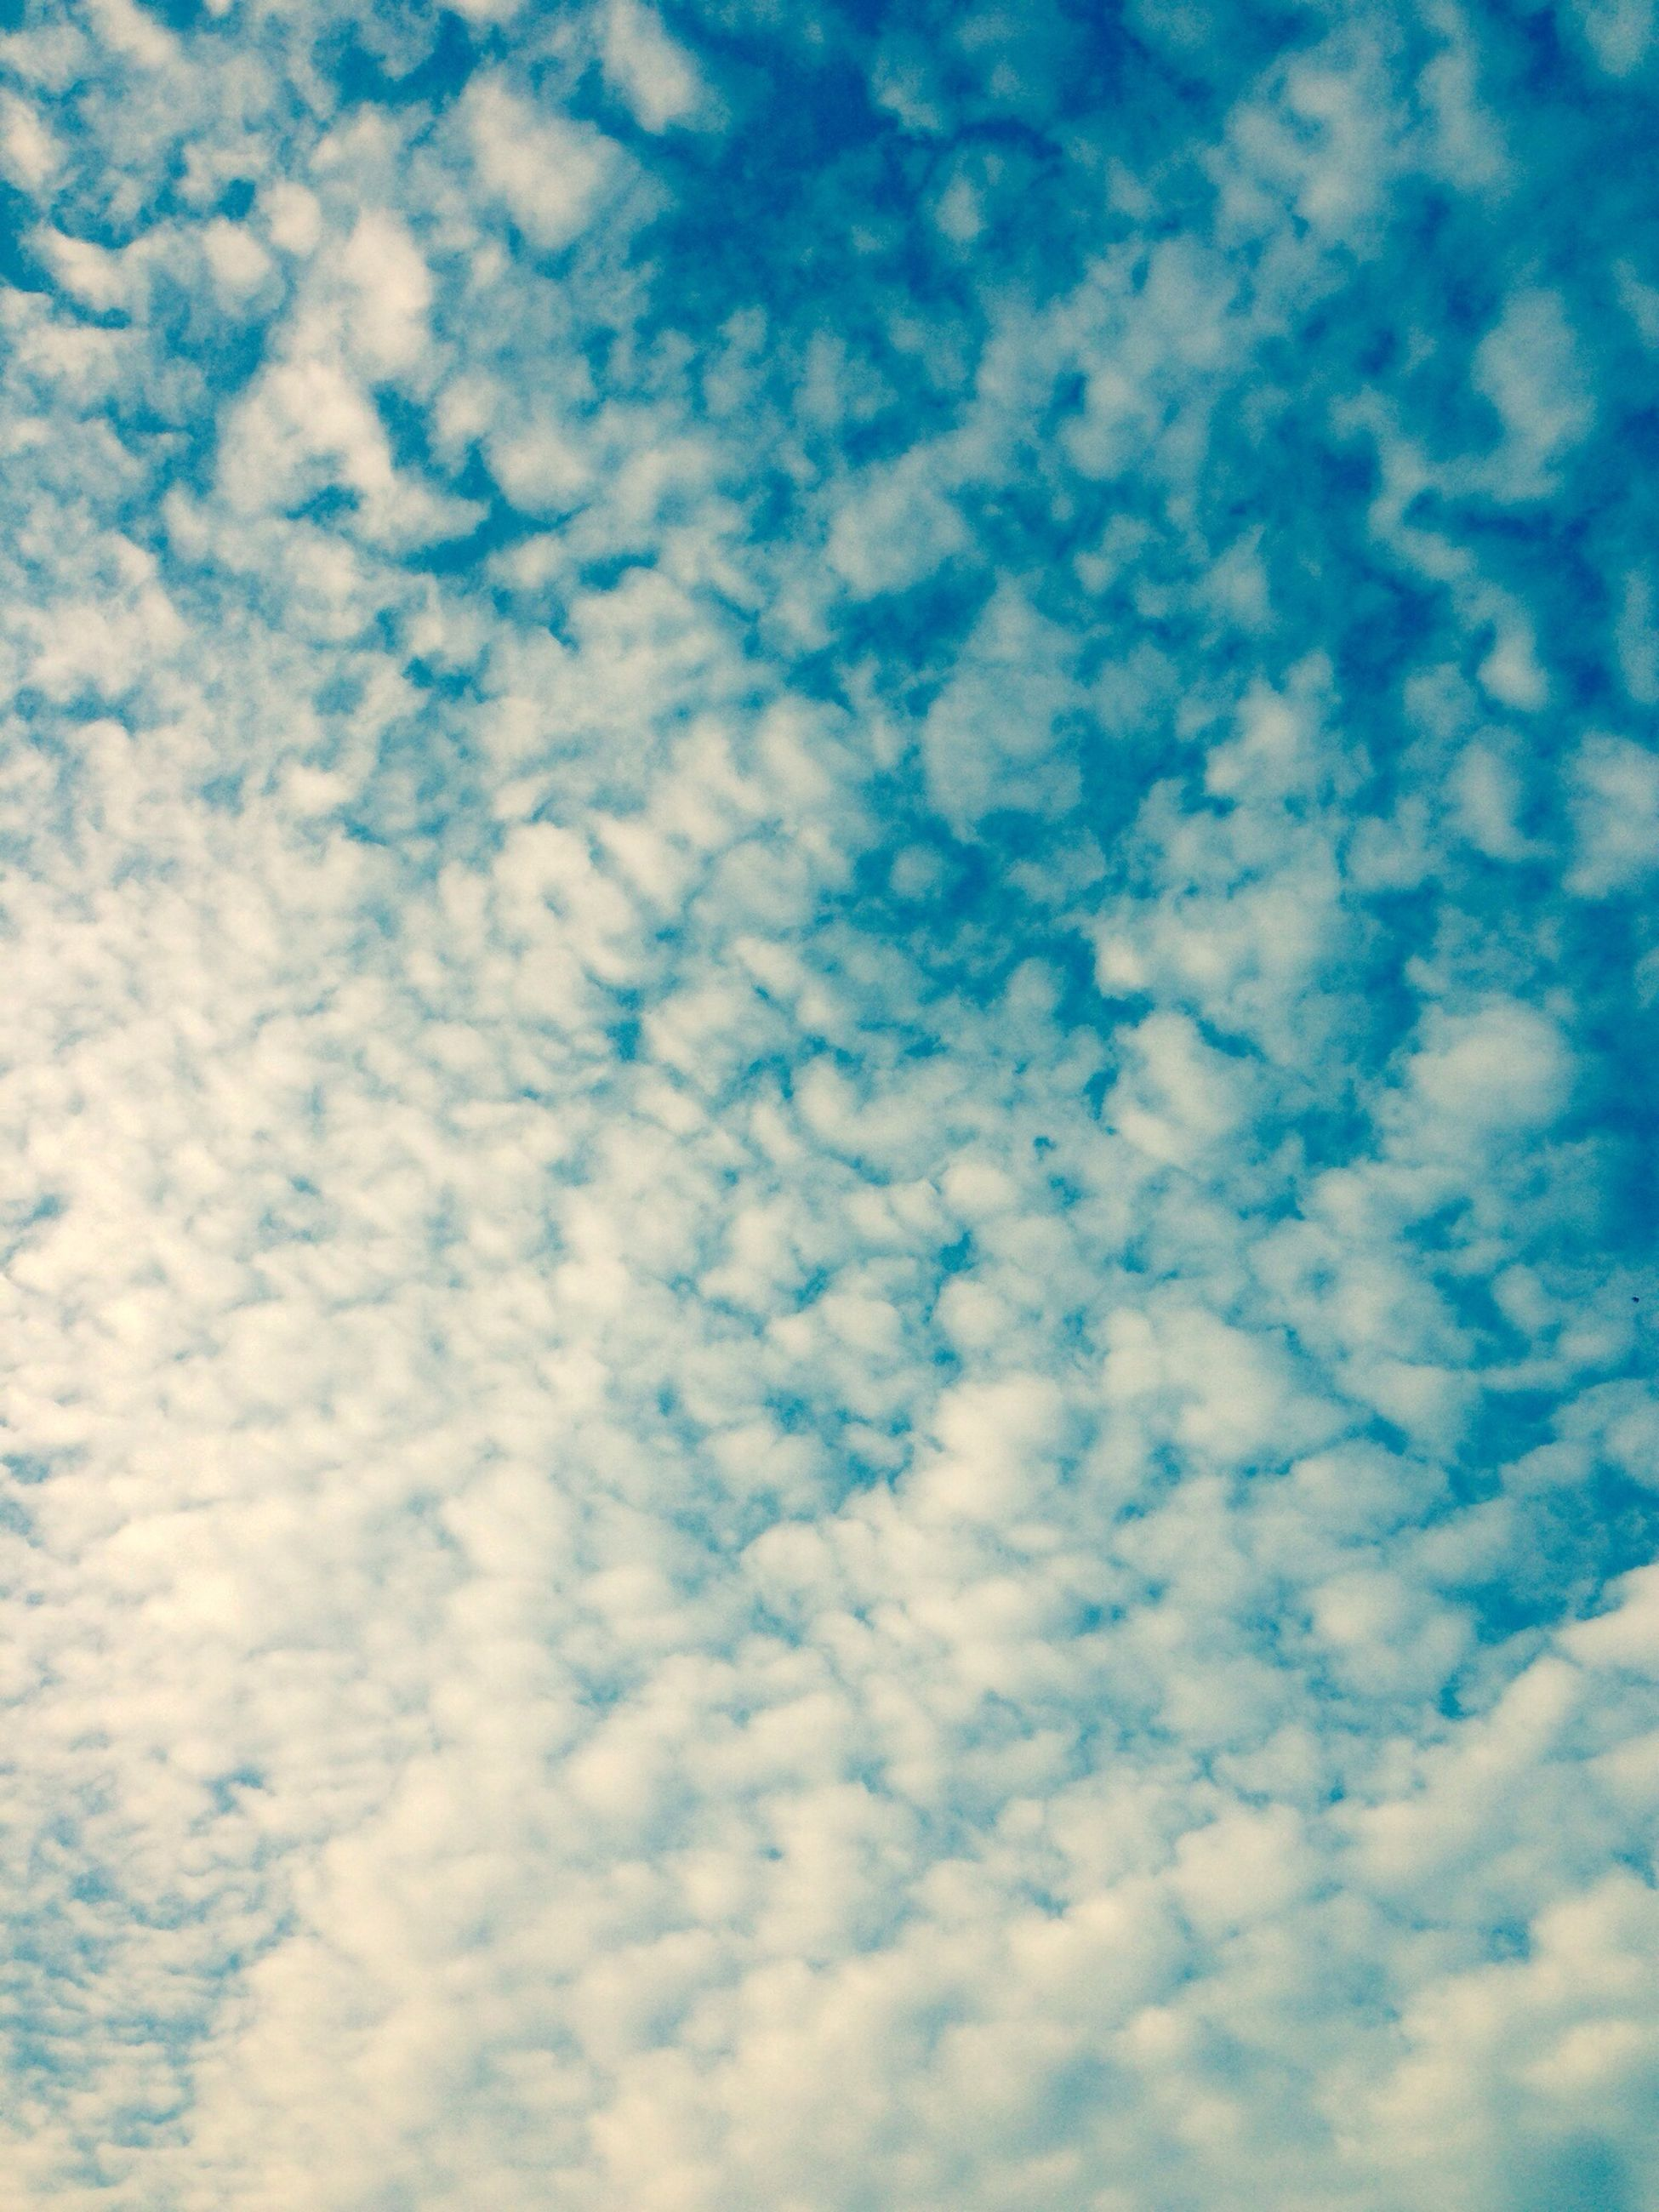 sky, low angle view, cloud - sky, blue, sky only, beauty in nature, backgrounds, tranquility, scenics, full frame, nature, tranquil scene, cloudy, cloudscape, cloud, white color, idyllic, outdoors, day, no people